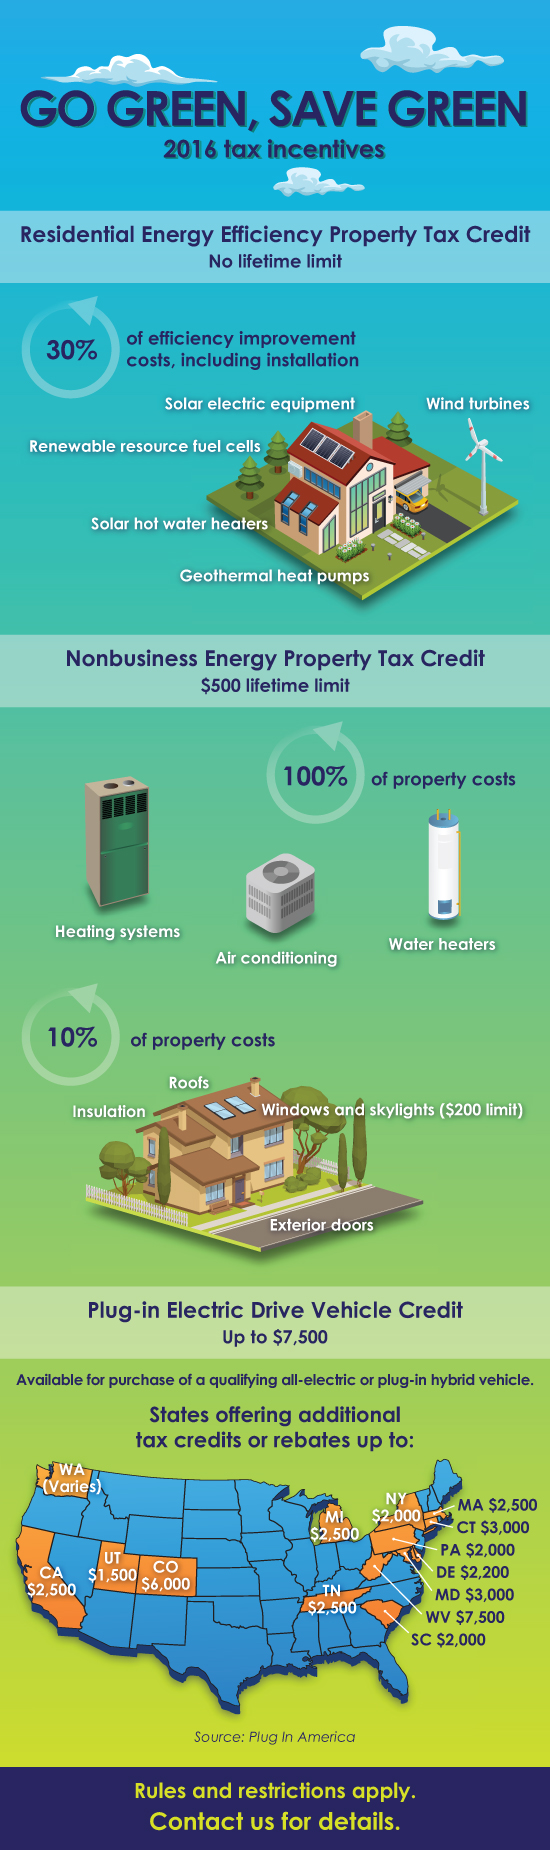 iff_energy-incentives_550x1850